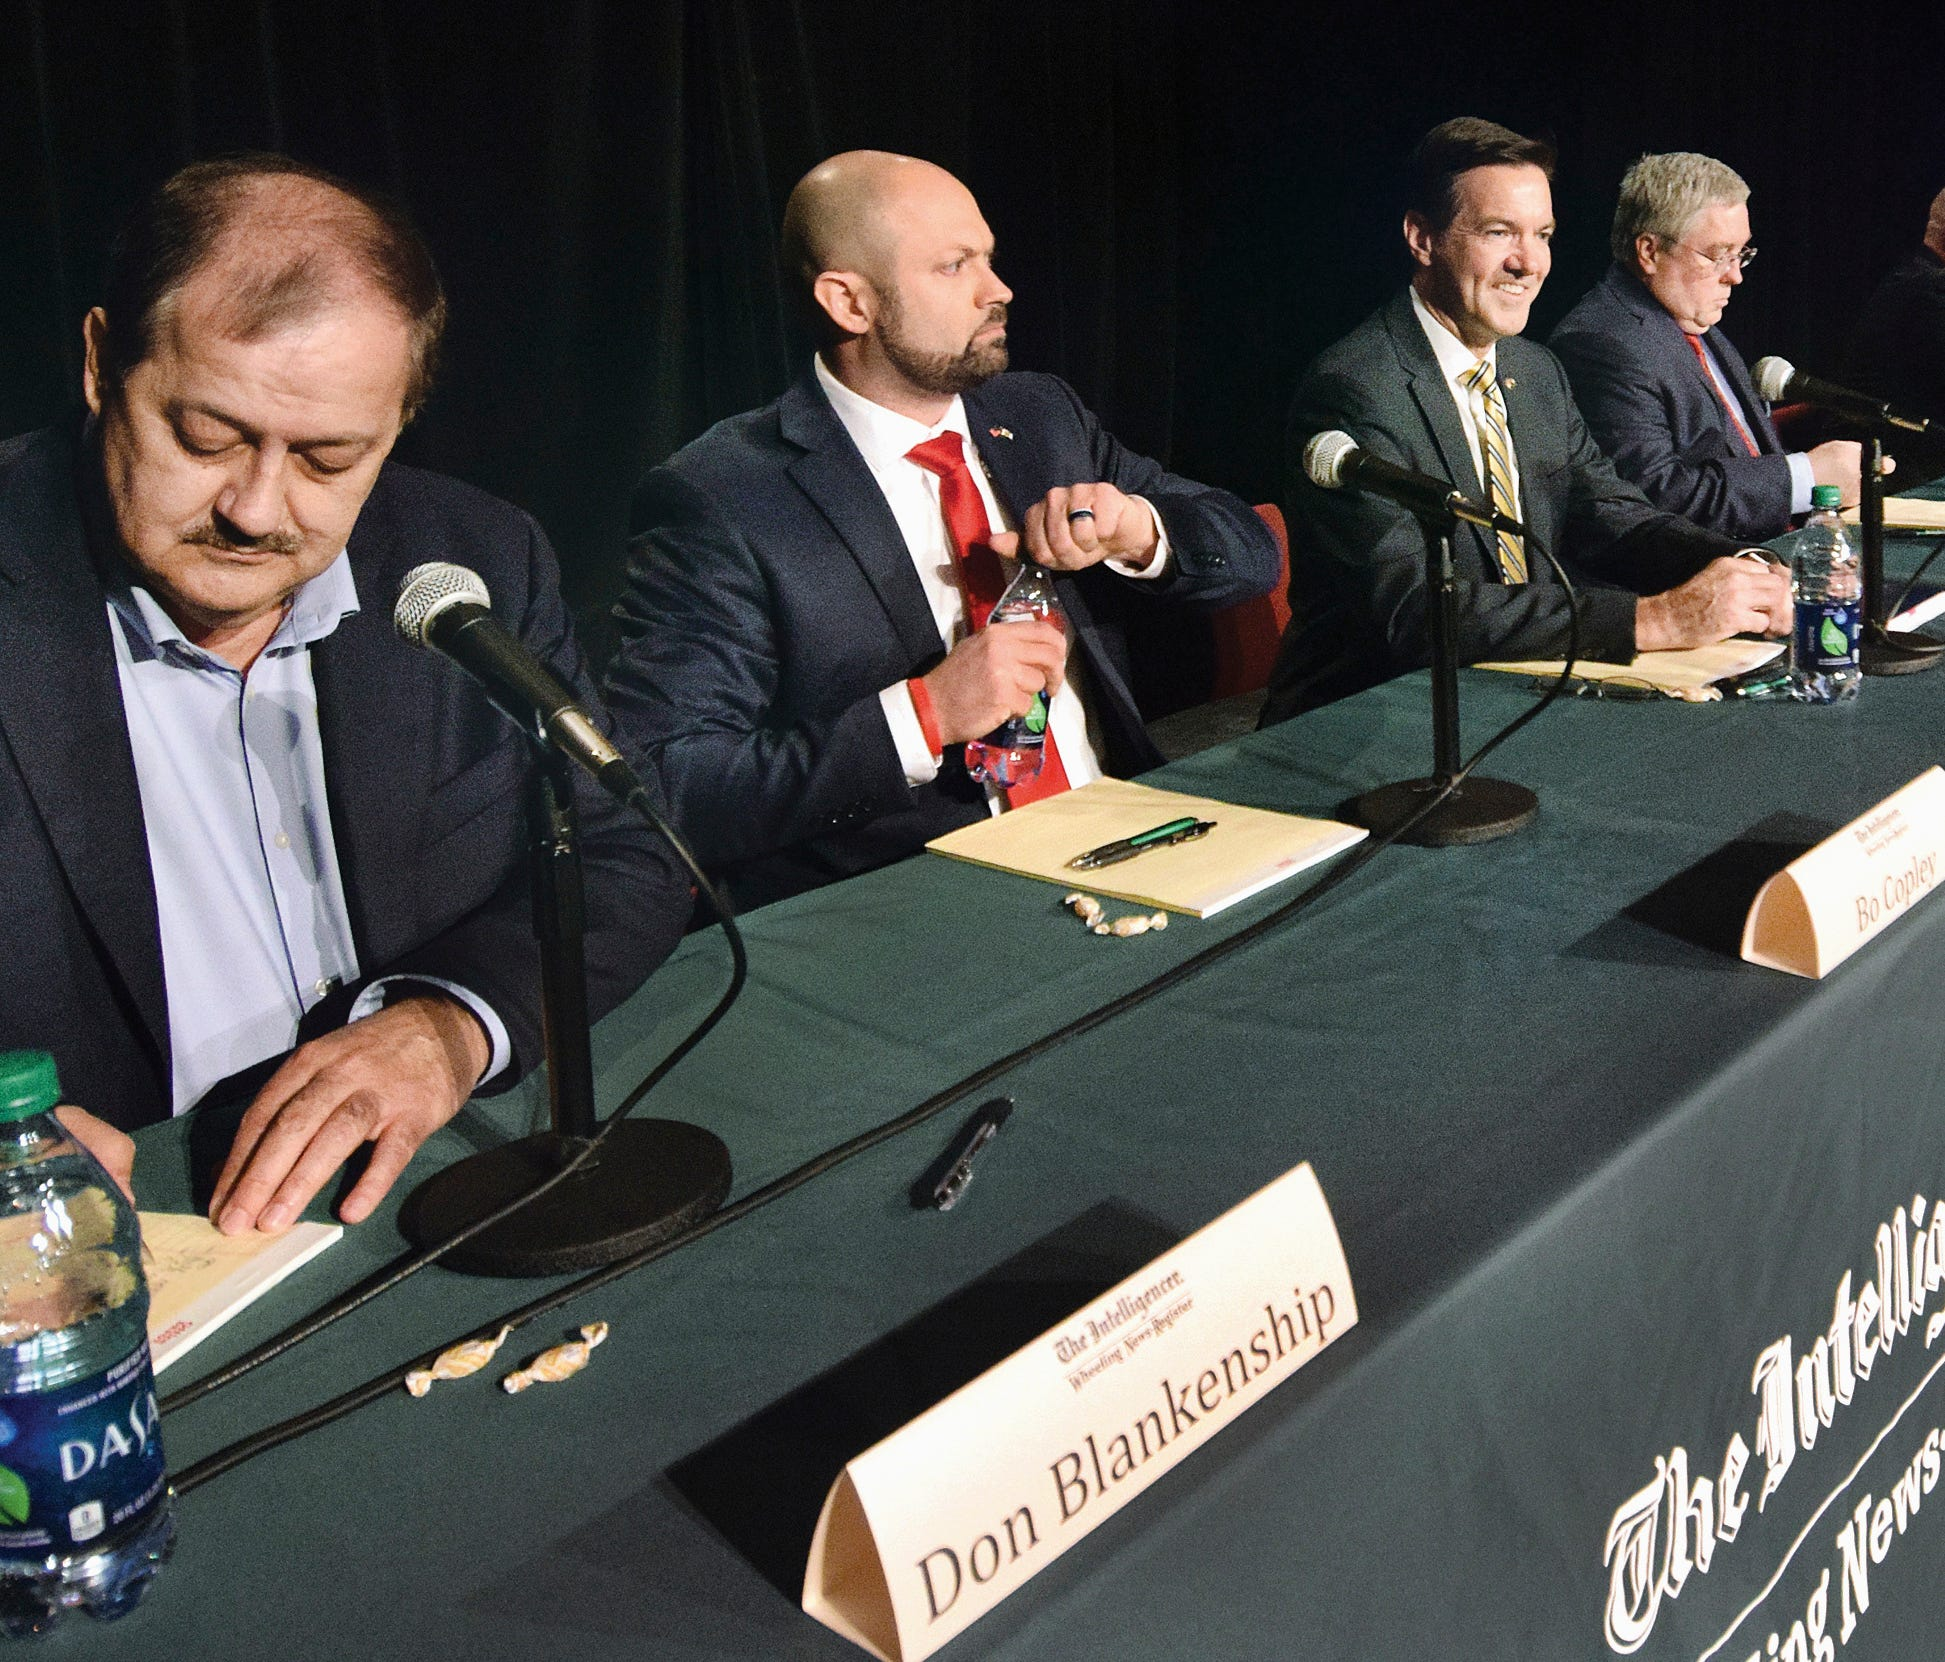 Candidates, from left, Don Blankenship, of Williamson, Bo Copley, of Delbarton; U.S. Rep. Evan Jenkins, R-W.Va., of Huntington, West Virginia Attorney General Patrick Morrisey, of Charles Town, Jack Newbrough, of Weirton, and Tom Willis, of Martinsbu